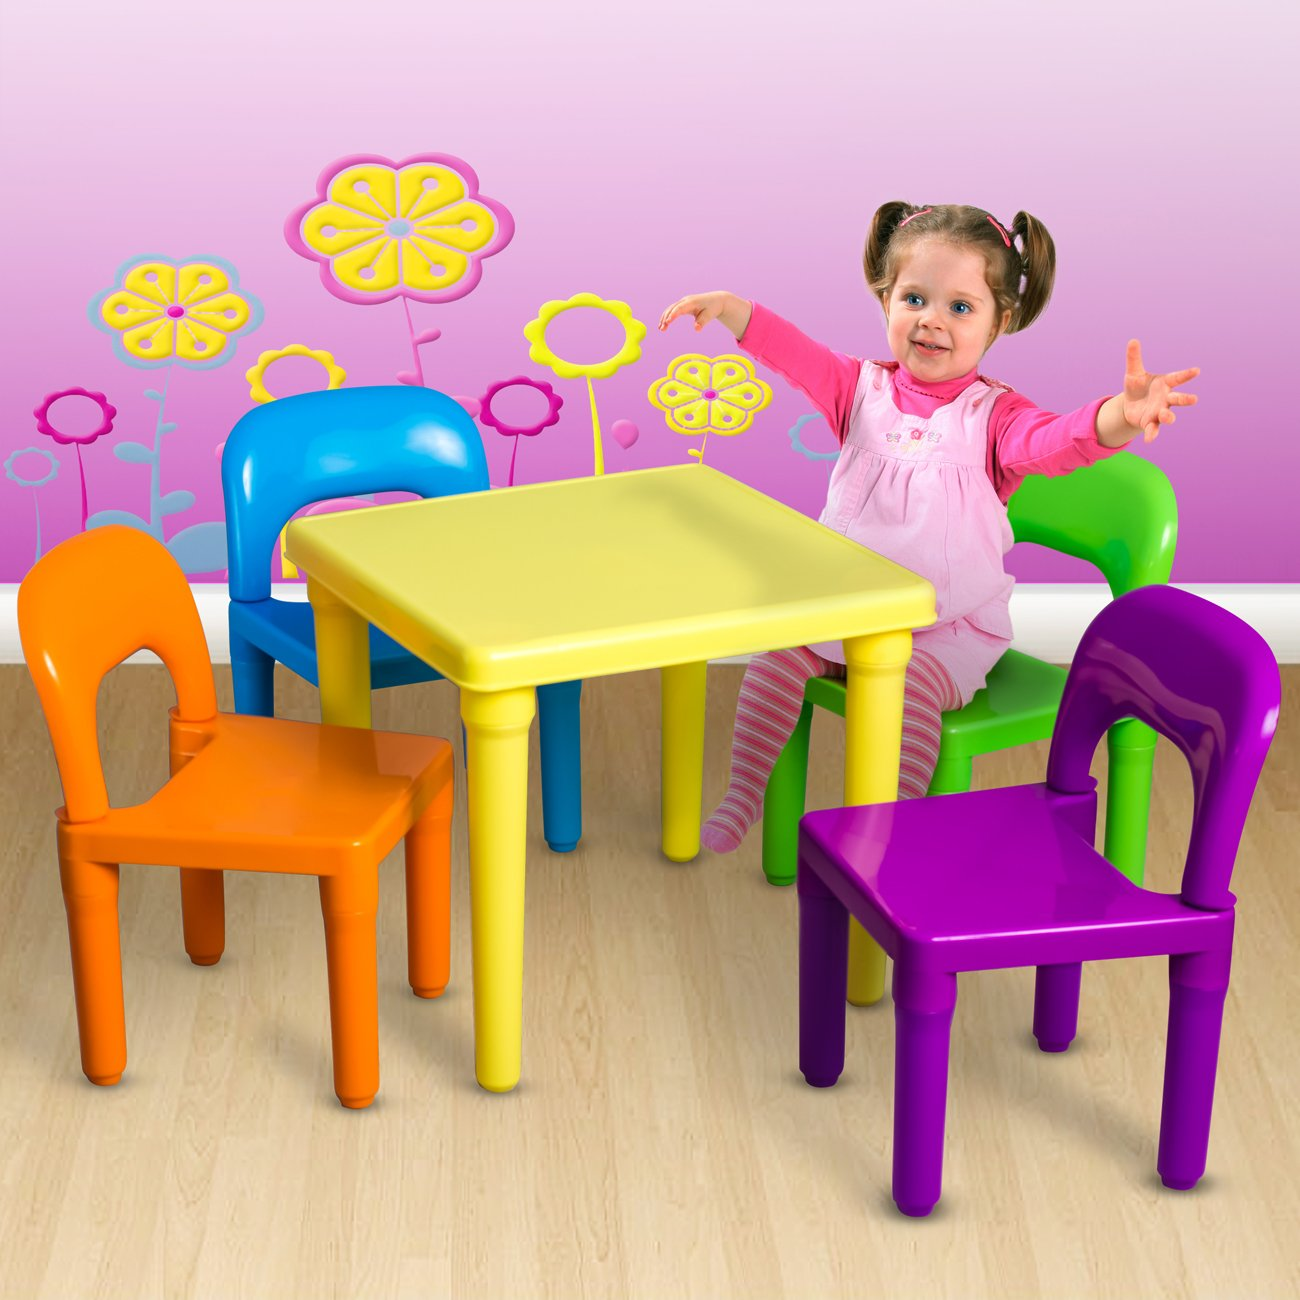 Tot tutors kids table and chairs play set child activity for Toddler table